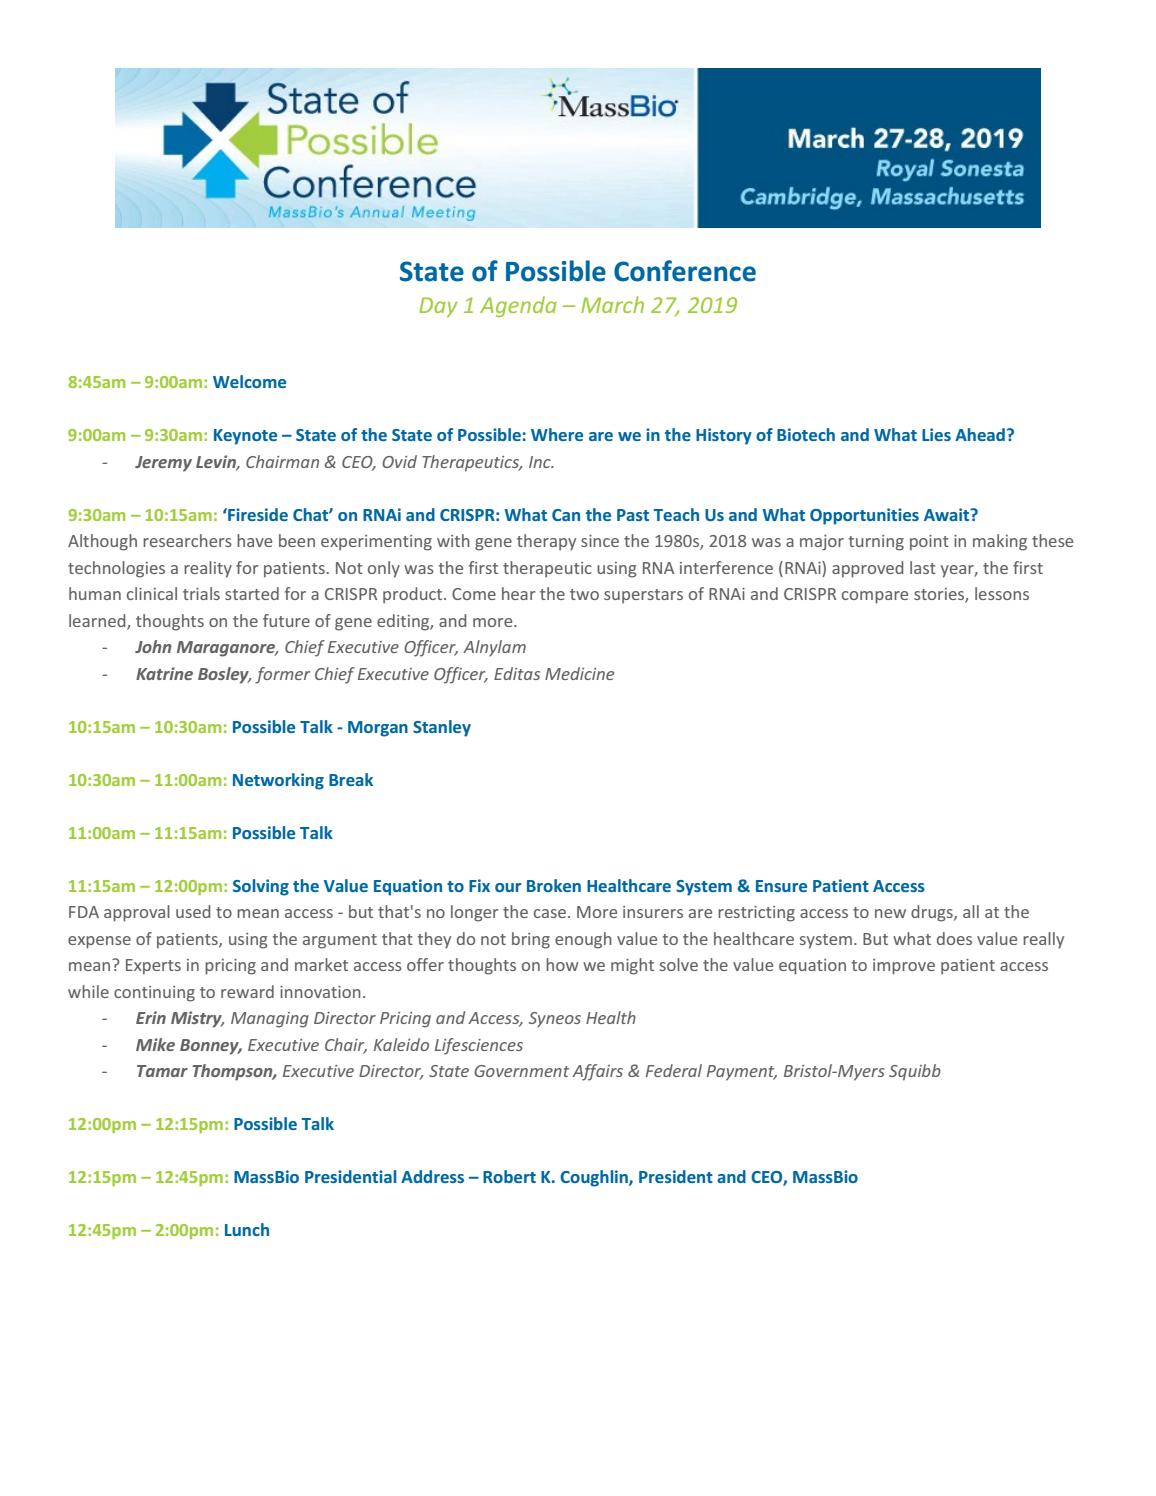 State of Possible Conference Agenda Feb 22 2019 by Mass Bio